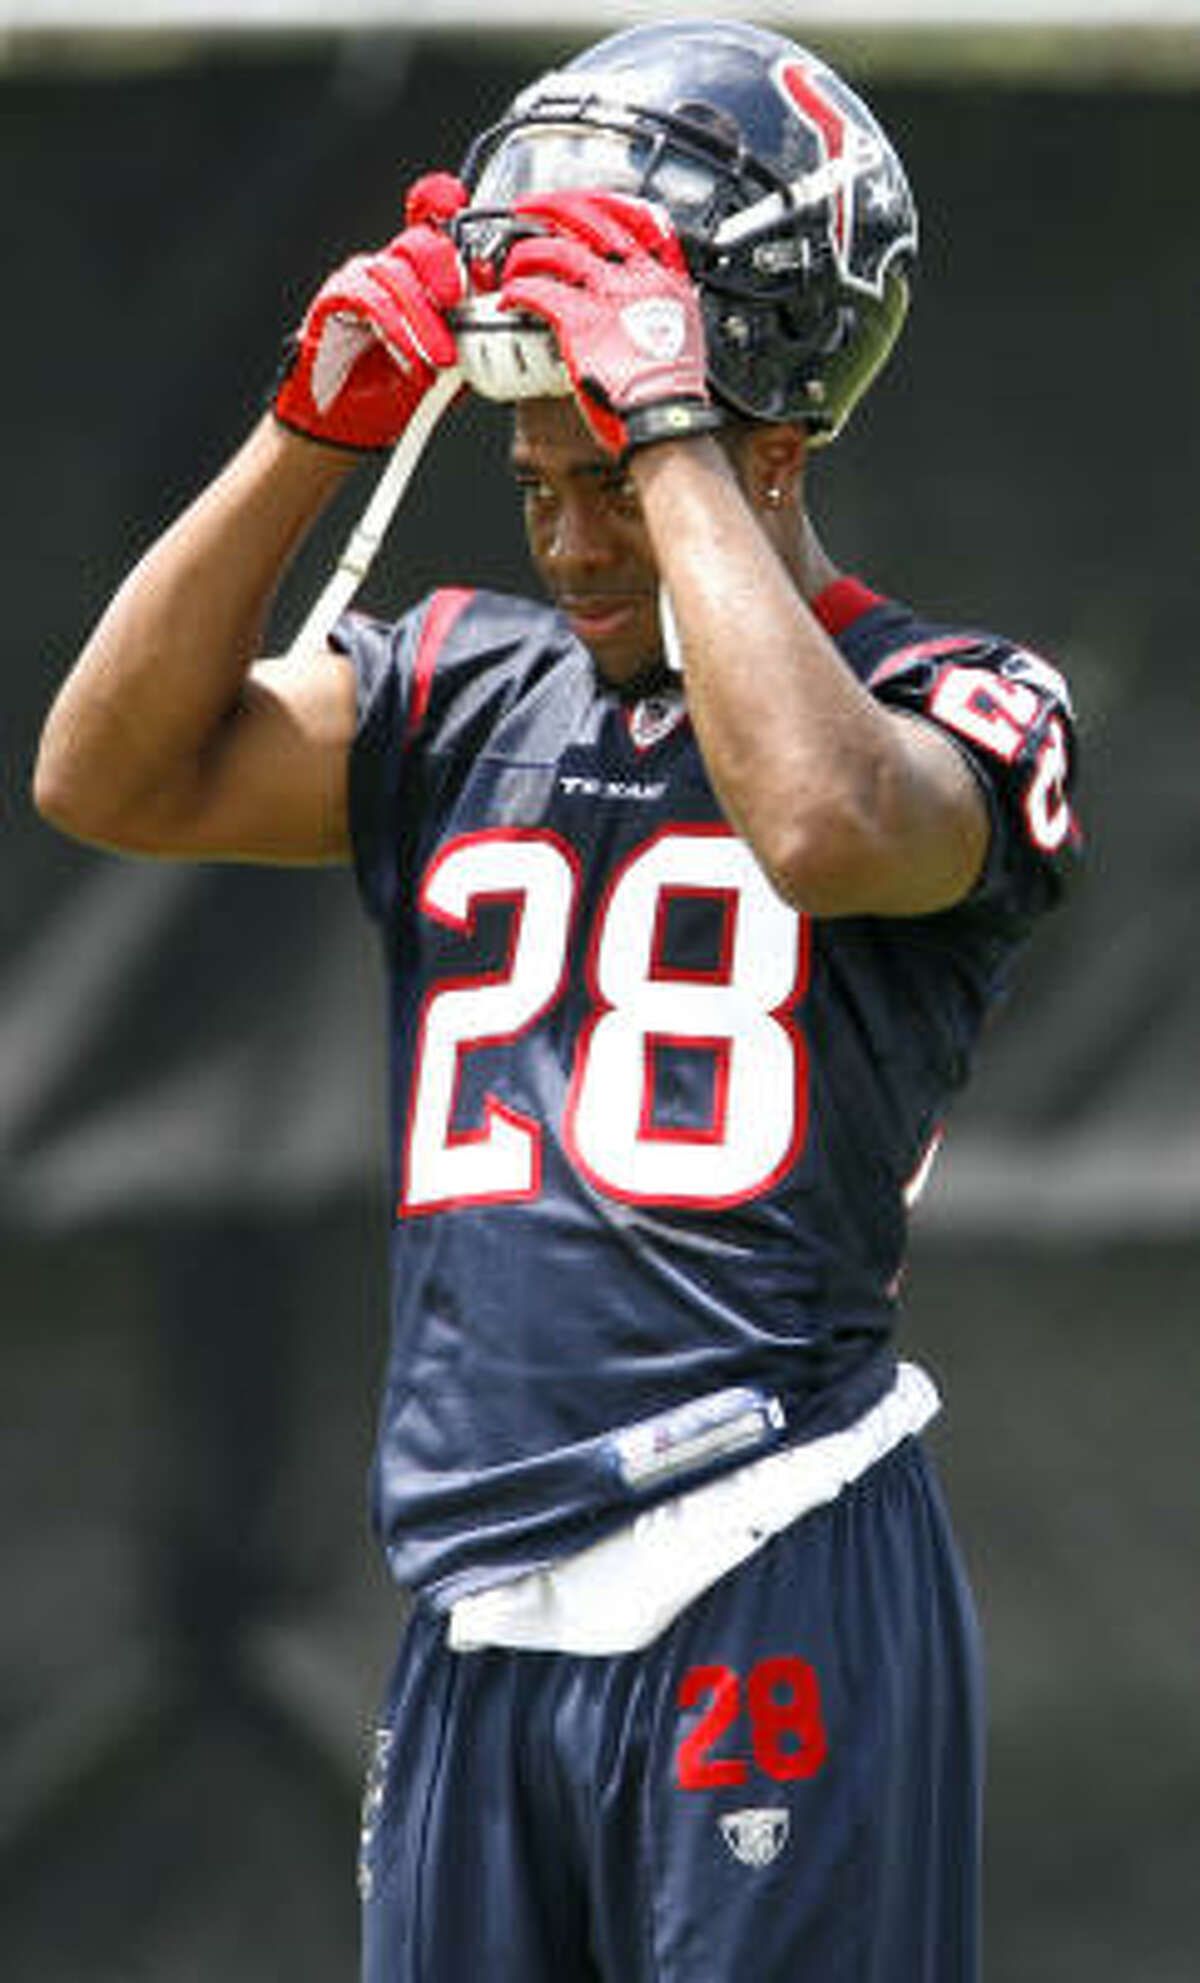 Texans cornerback Antwaun Molden returned to practice after missing time with a foot injury.